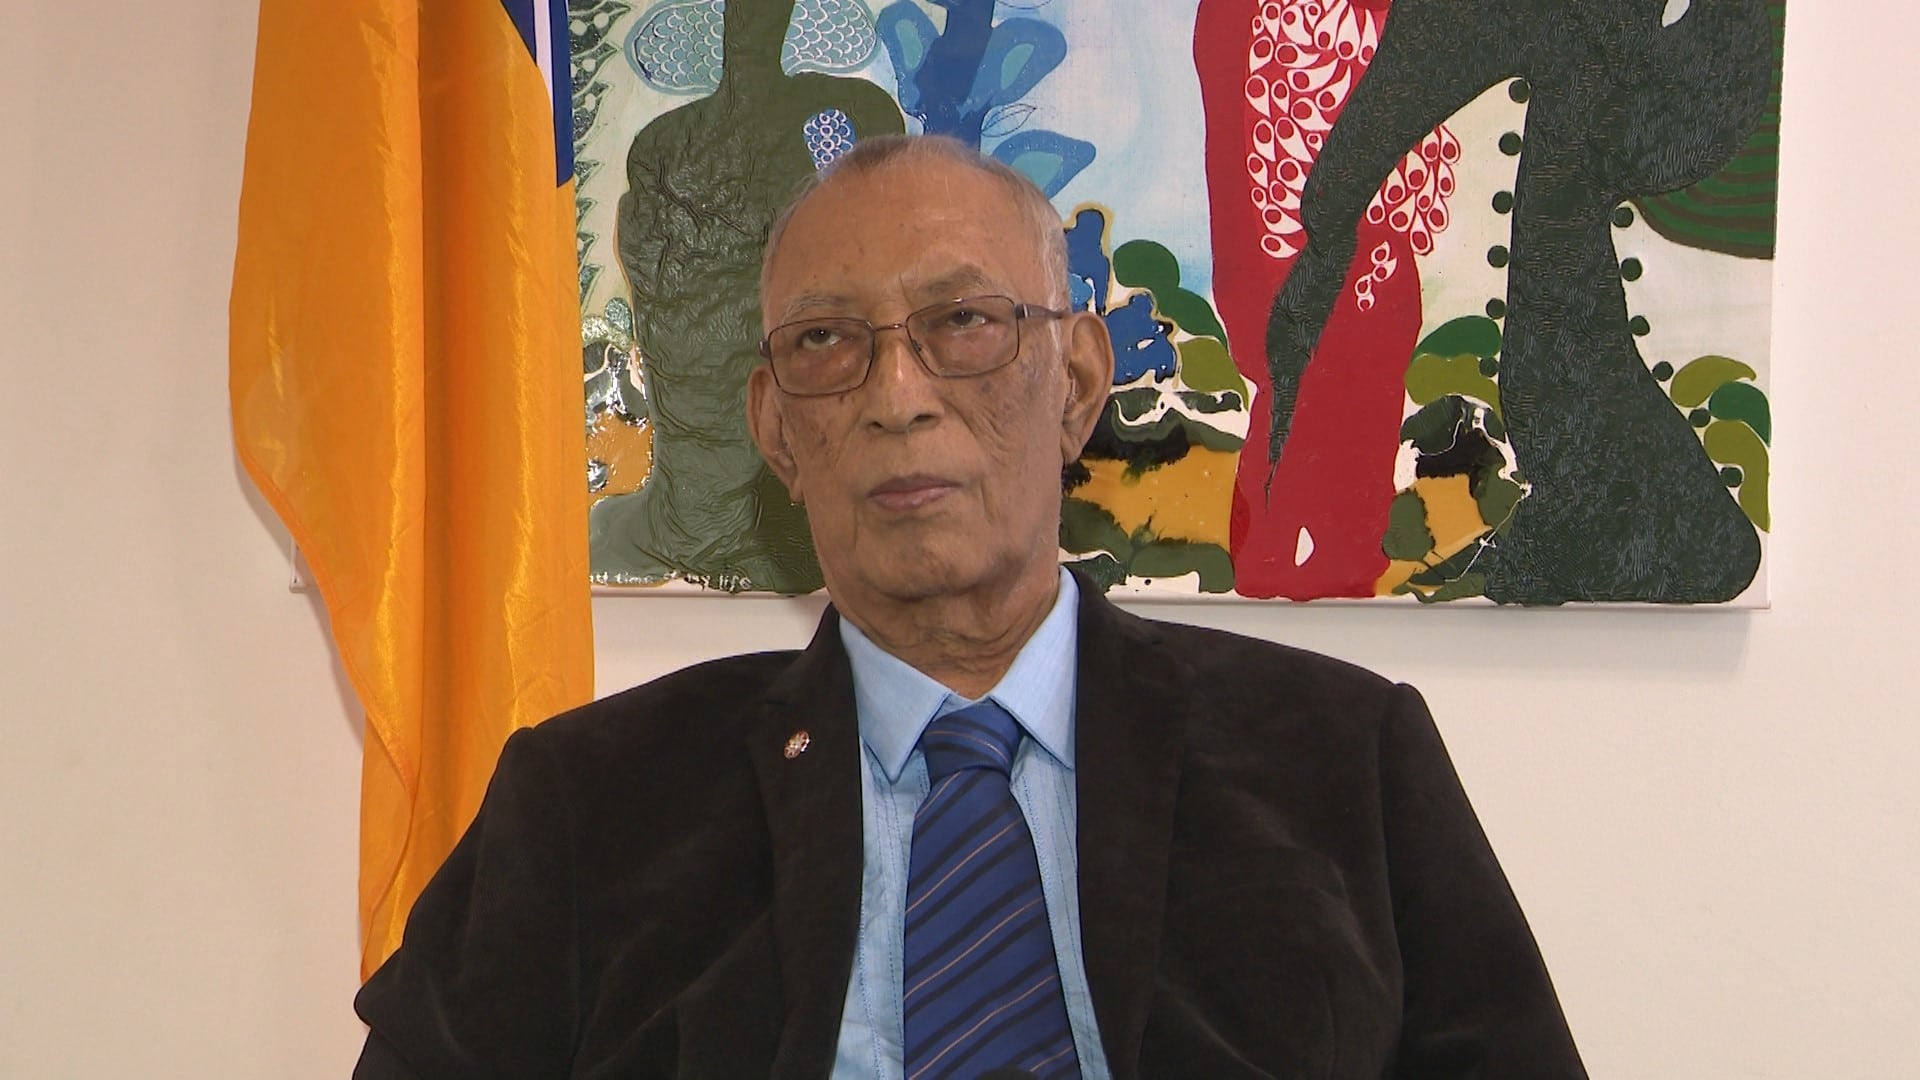 Former Premier Sir Toke Talagi is expected to return to Niue in the  chartered flight.  Sir Toke Talagi was medevaced to New Zealand last Tuesday evening due to ill health.  According…